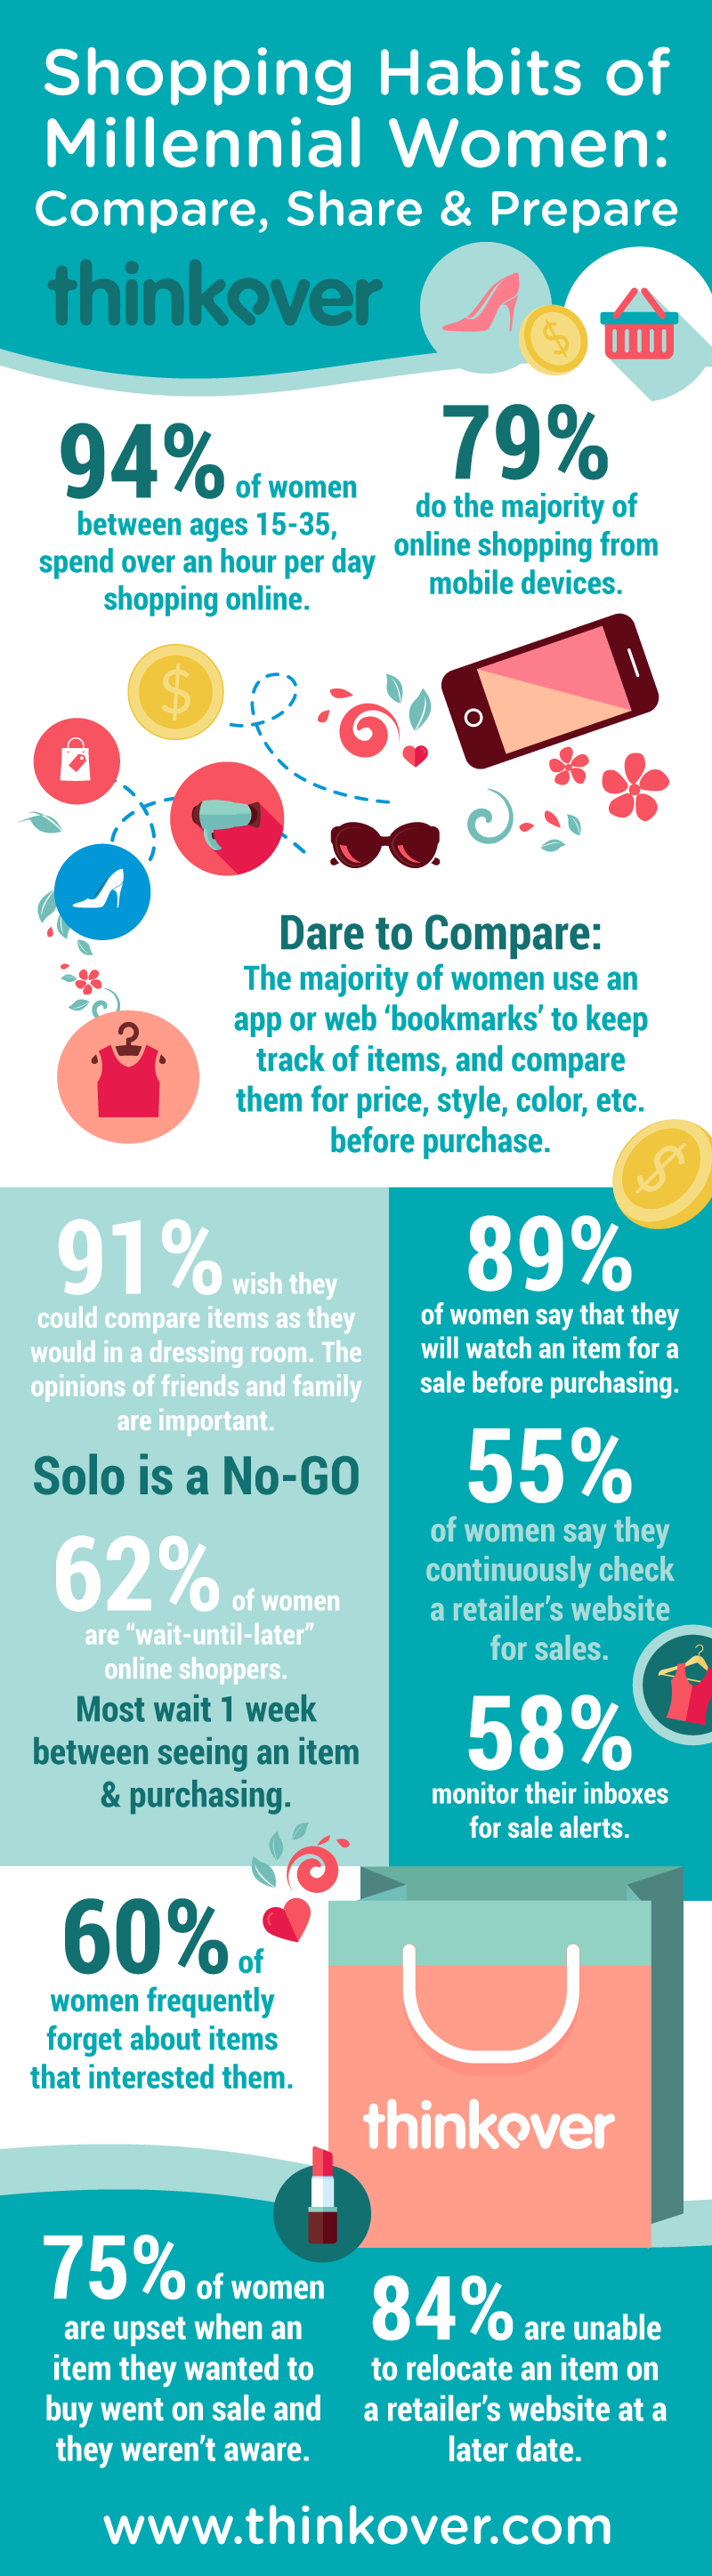 The Shopping Habits of Millennial Women Revealed